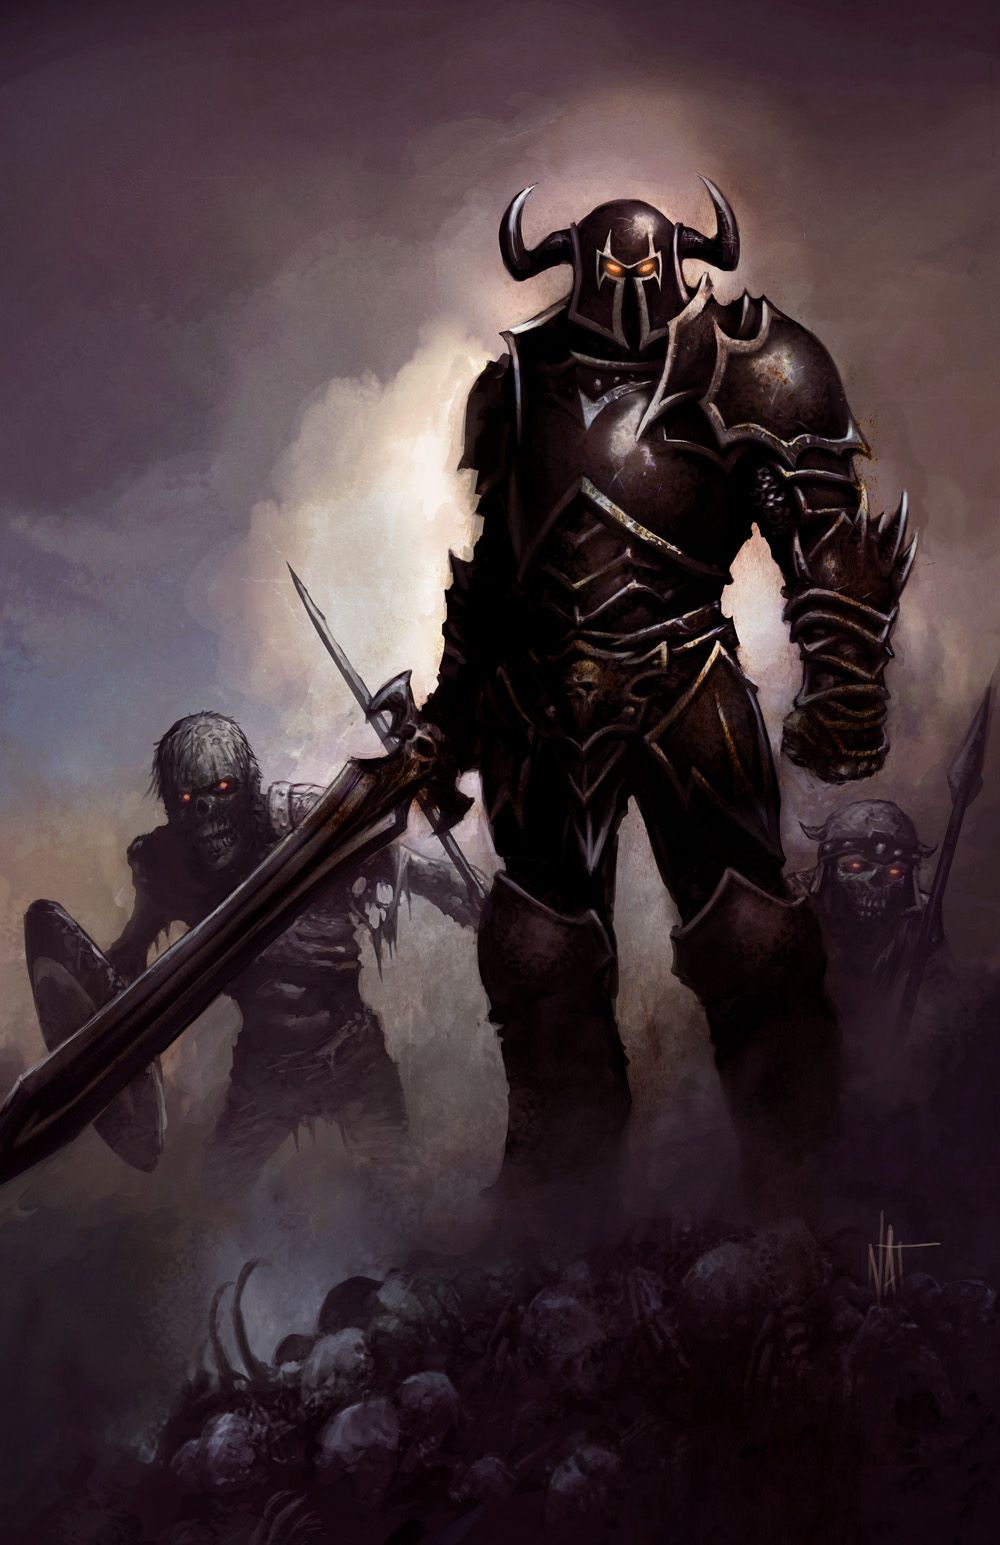 Pin By Blair Martin On Fantasy Art Dungeons And Dragons Characters Evil Knight Dnd Art